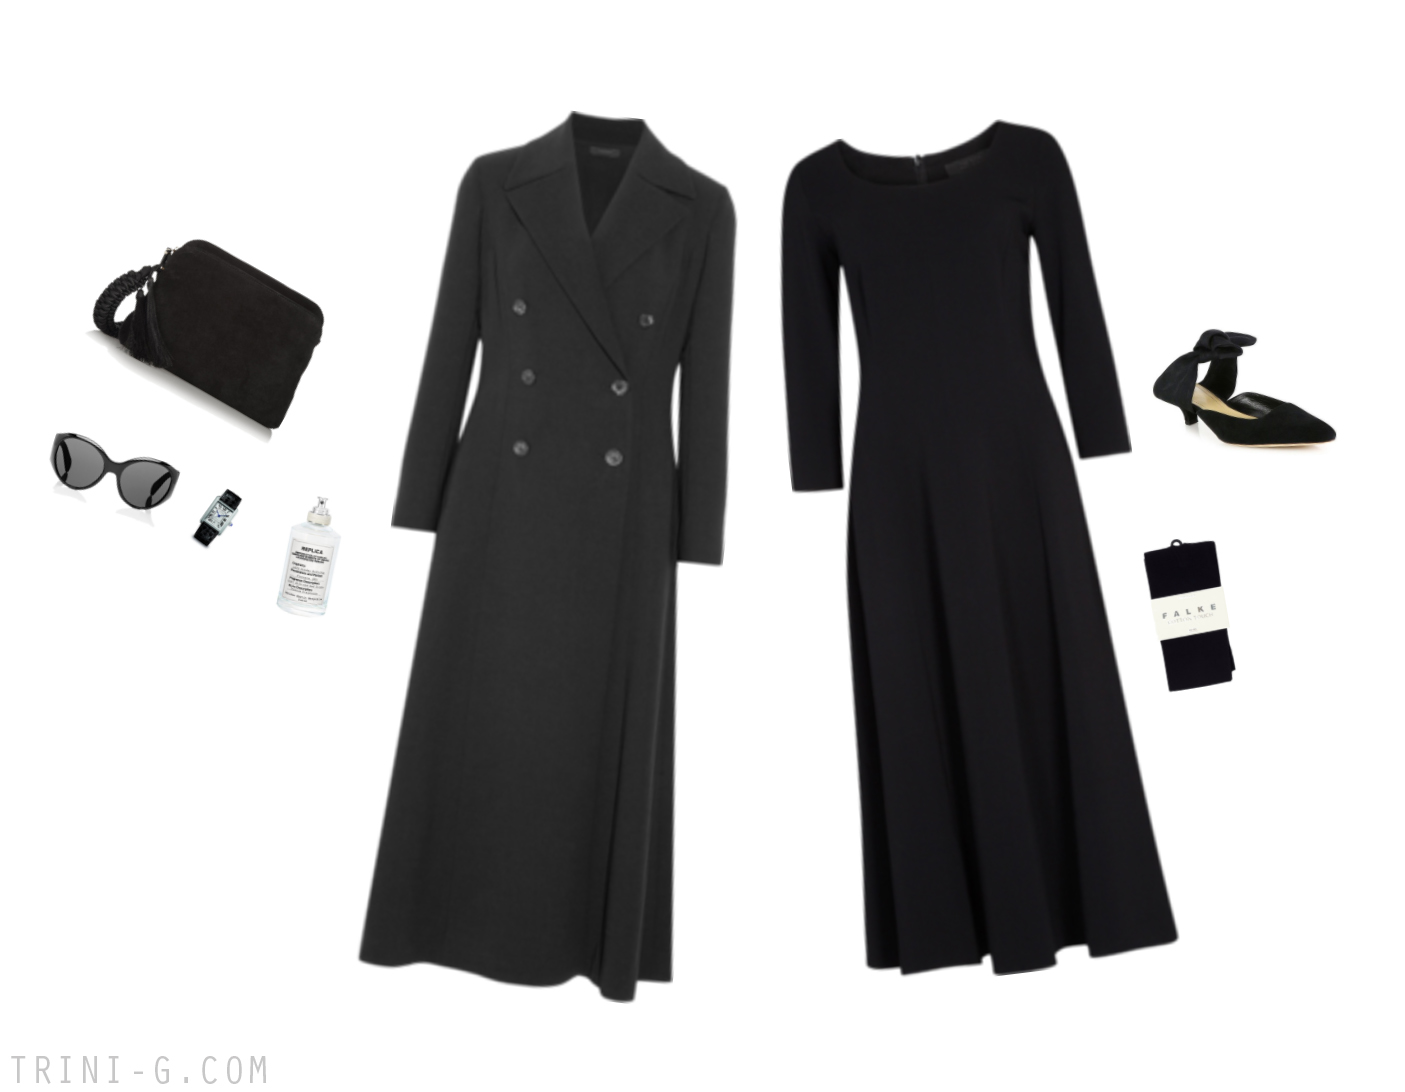 Trini |The Row dress The Row coat